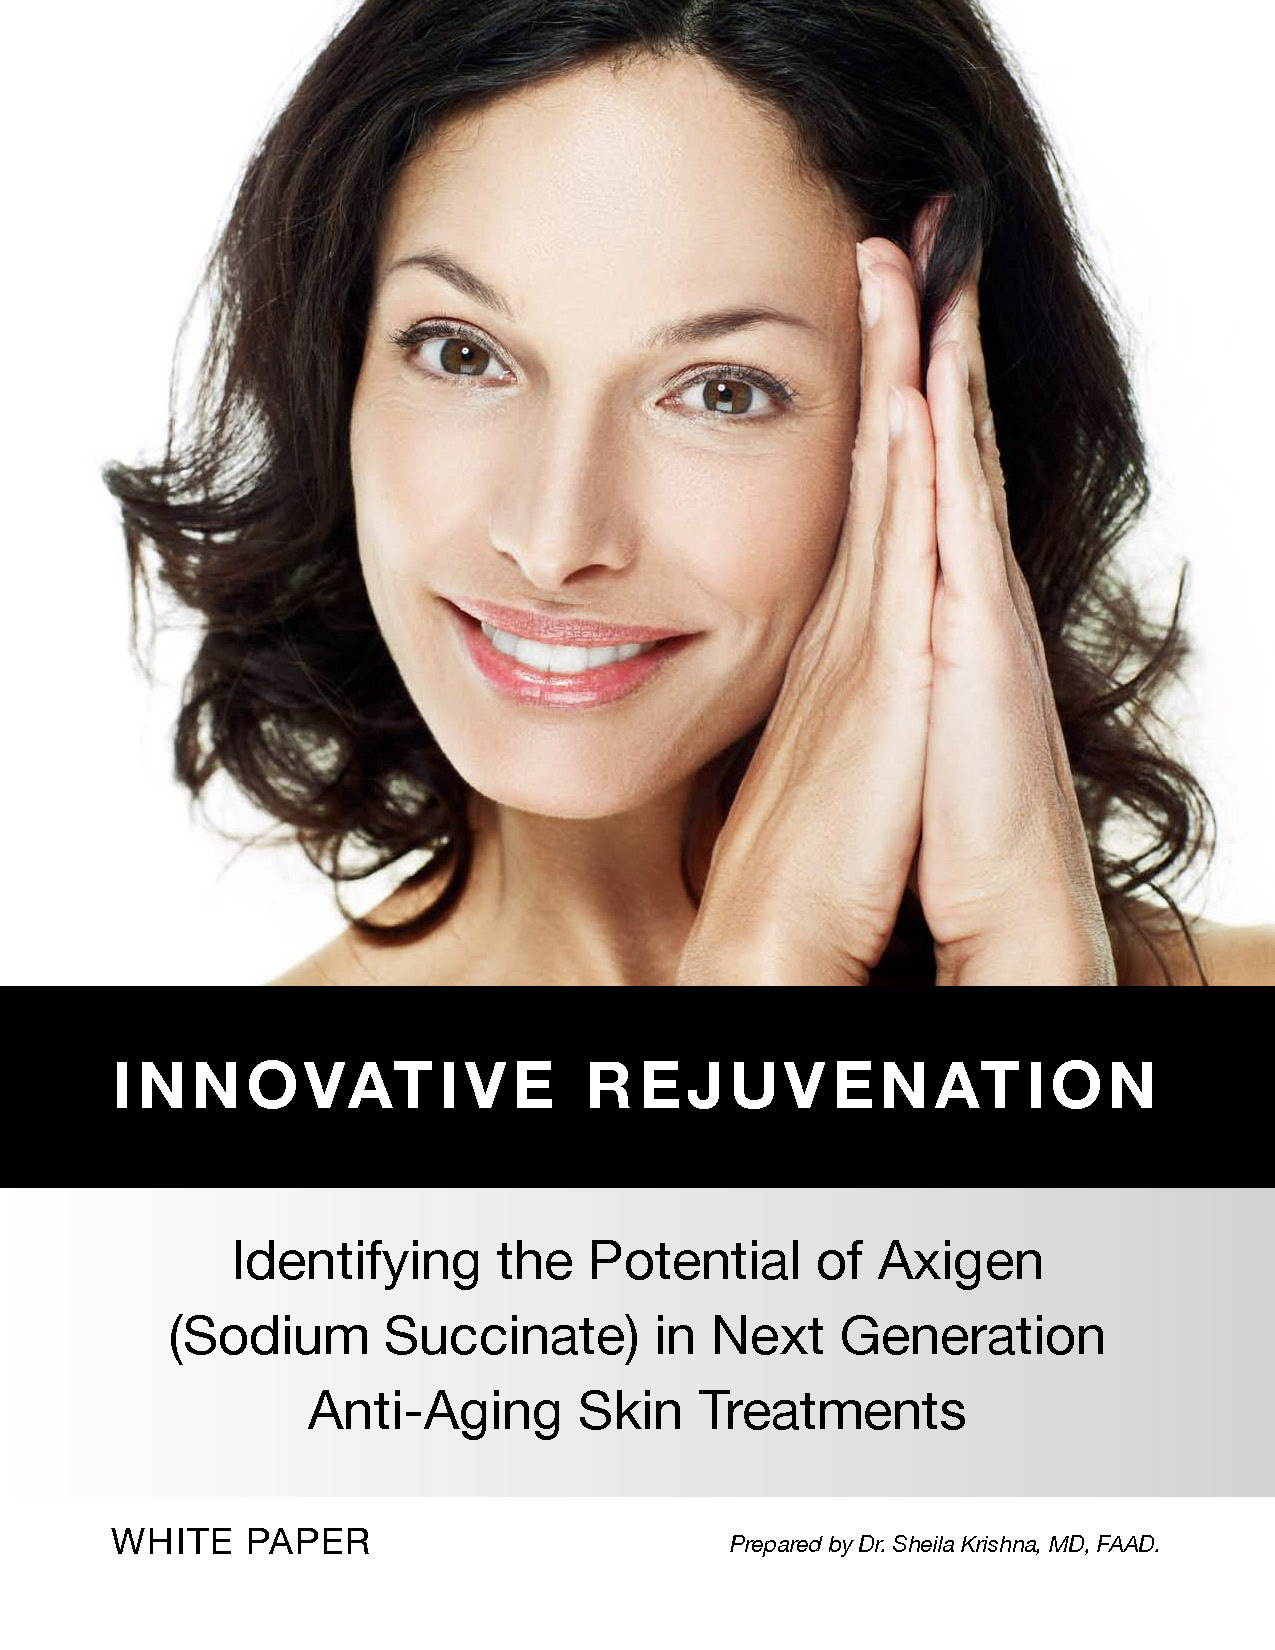 White paper discussing anti-aging skincare, the role of Agixen in skin rejuvenation